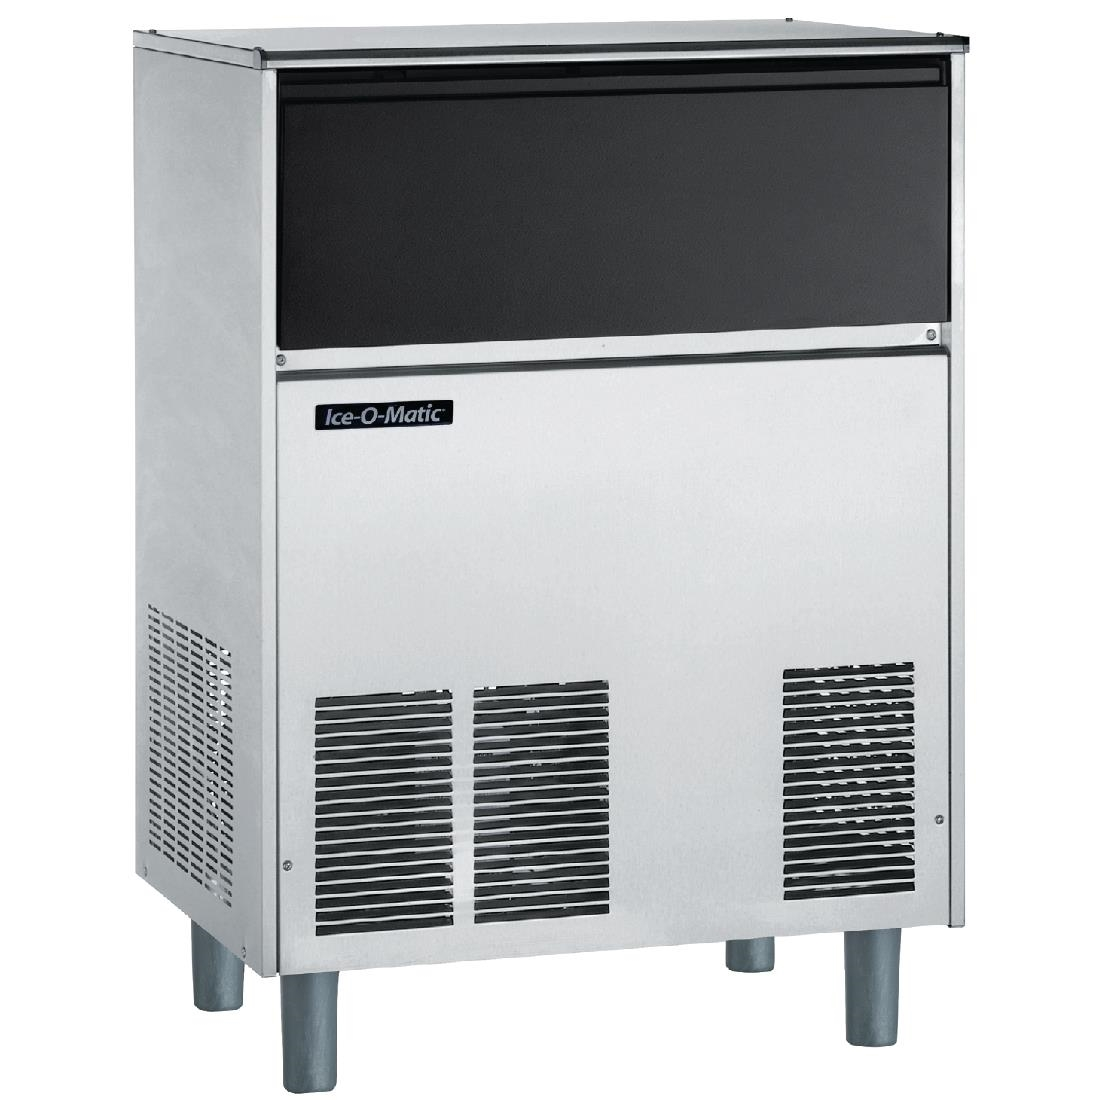 Image of Ice-O-Matic Thimble Ice Maker 88kg Output ICEU186P